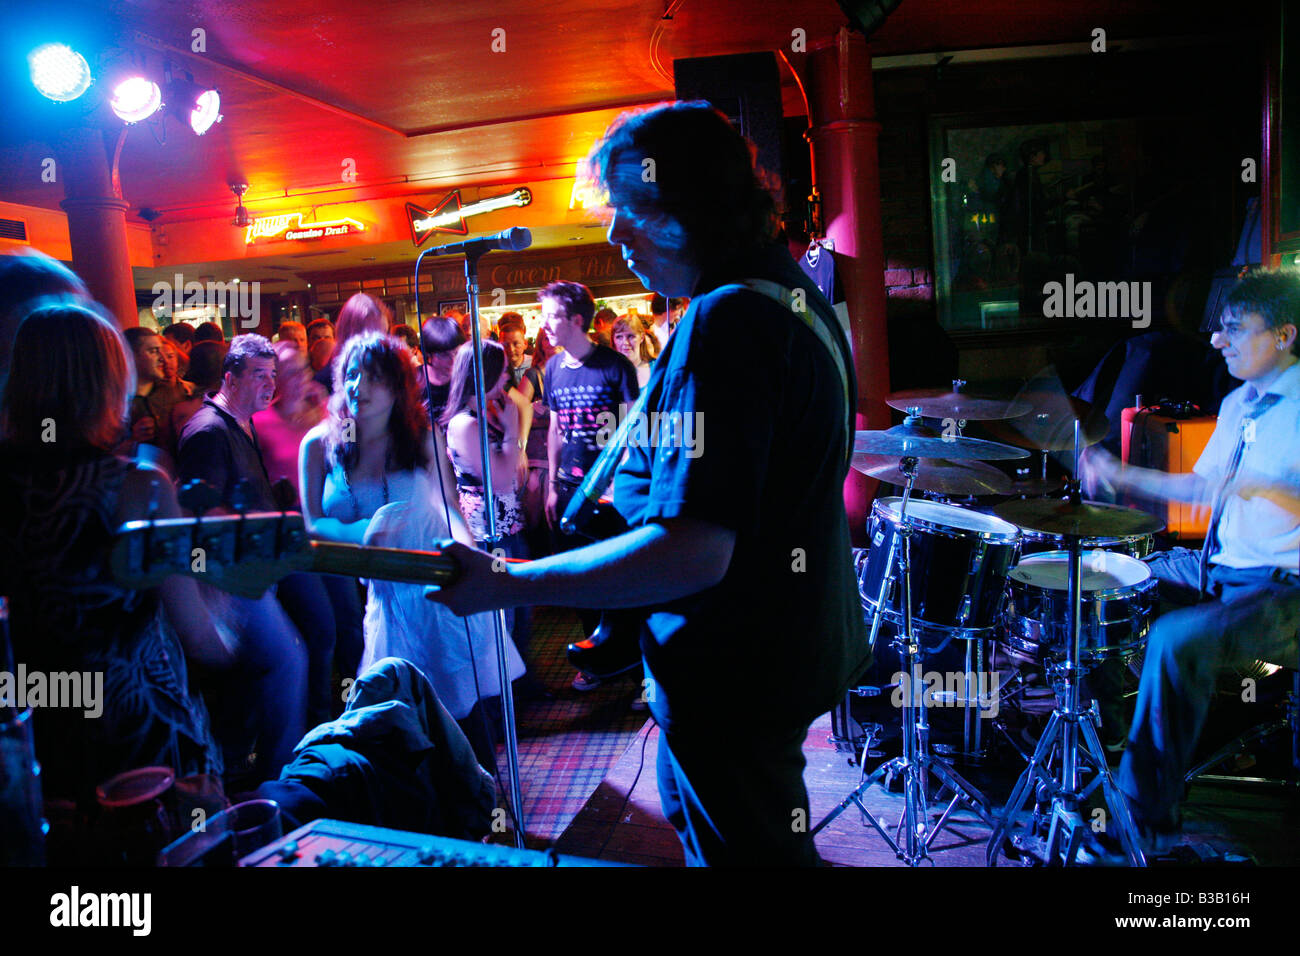 July 2008 - Live music show at the Cavern pub Liverpool England UK - Stock Image